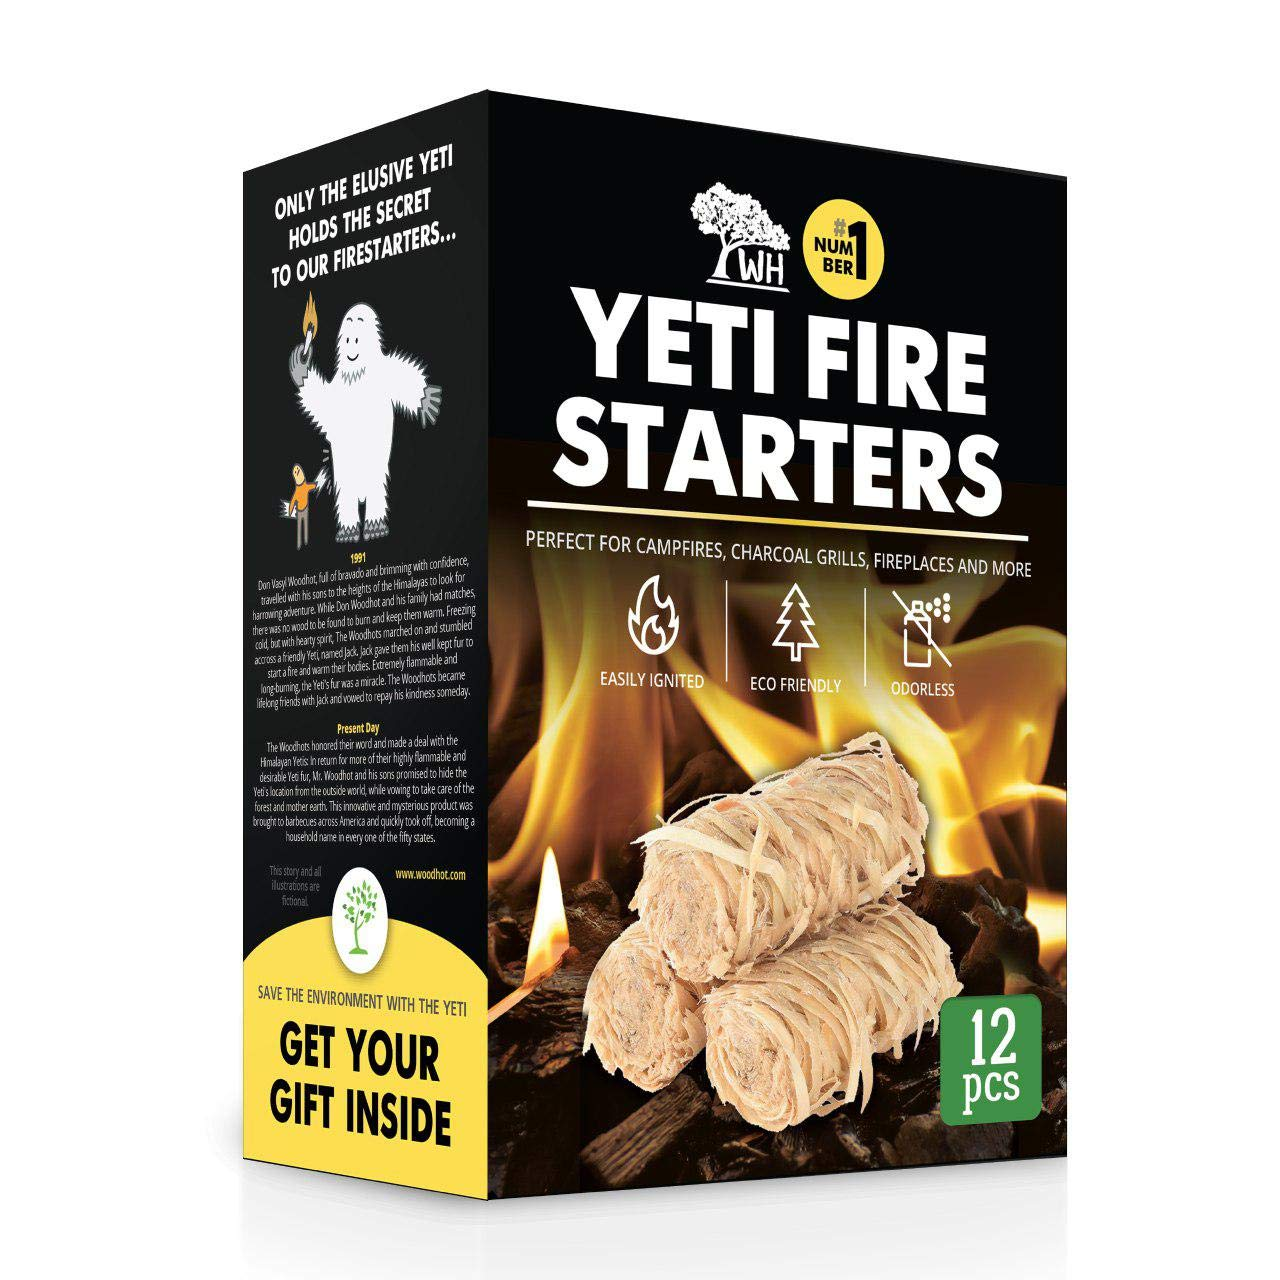 WOODHOT FIRE Starters Natural Tumbleweeds | 12 pcs | - YETI Wood fire Starter for Fireplace, Campfire, Wood Stove, fire Pit, Charcoal Grill, Barbecue Smoker, BBQ by WOODHOT